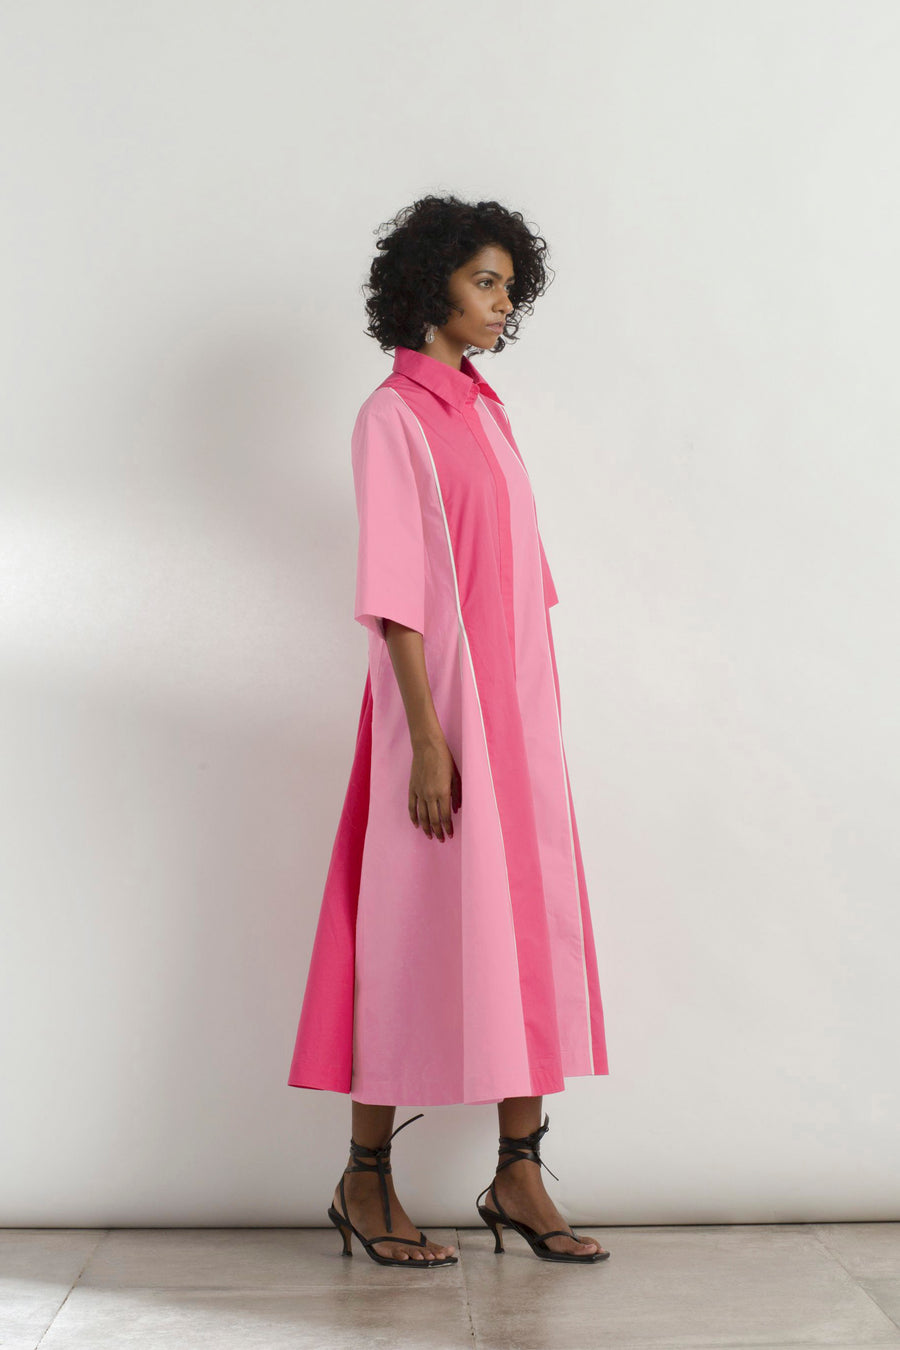 Pink Colour Blocked Dress